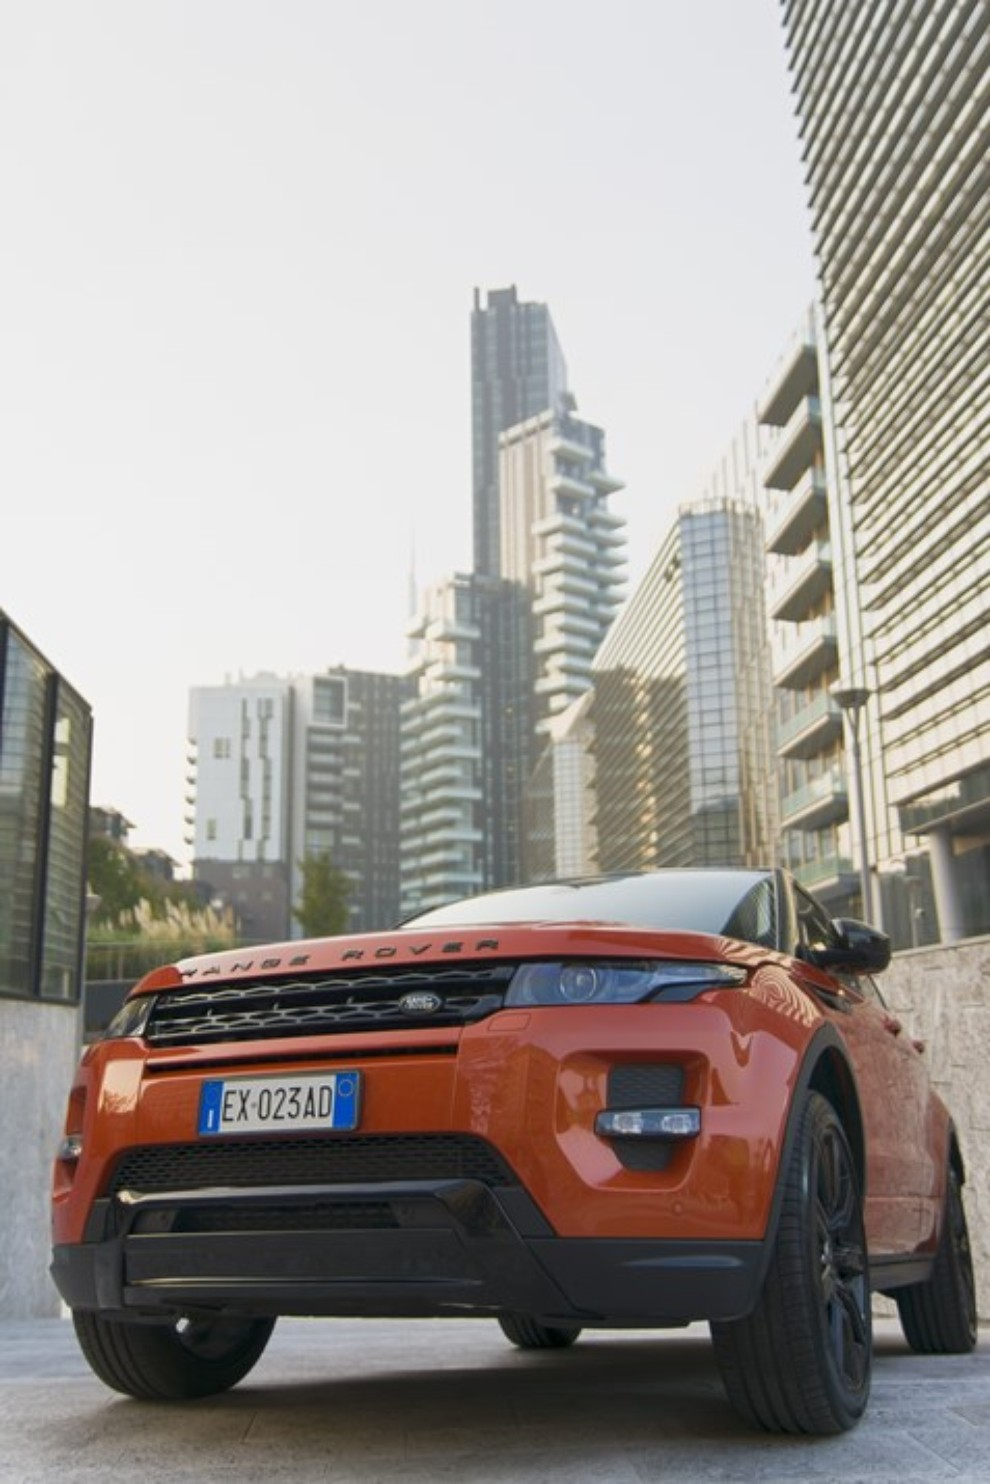 Land Rover New Discovery By Invitation Only Roma – Milano - Foto 8 di 12